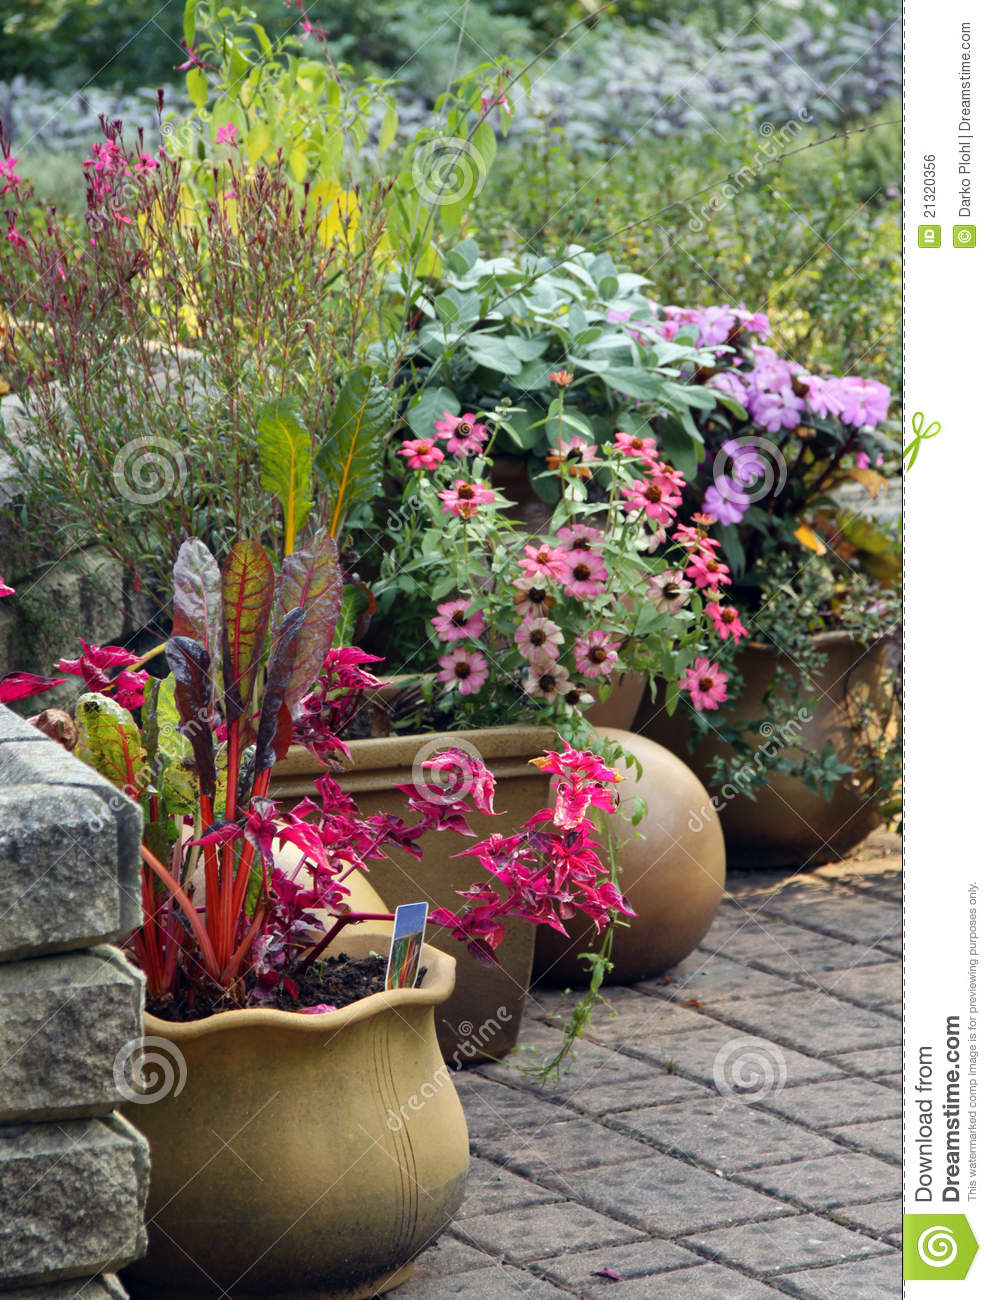 Terrace garden with pot plants royalty free stock image for Terrace garden plants